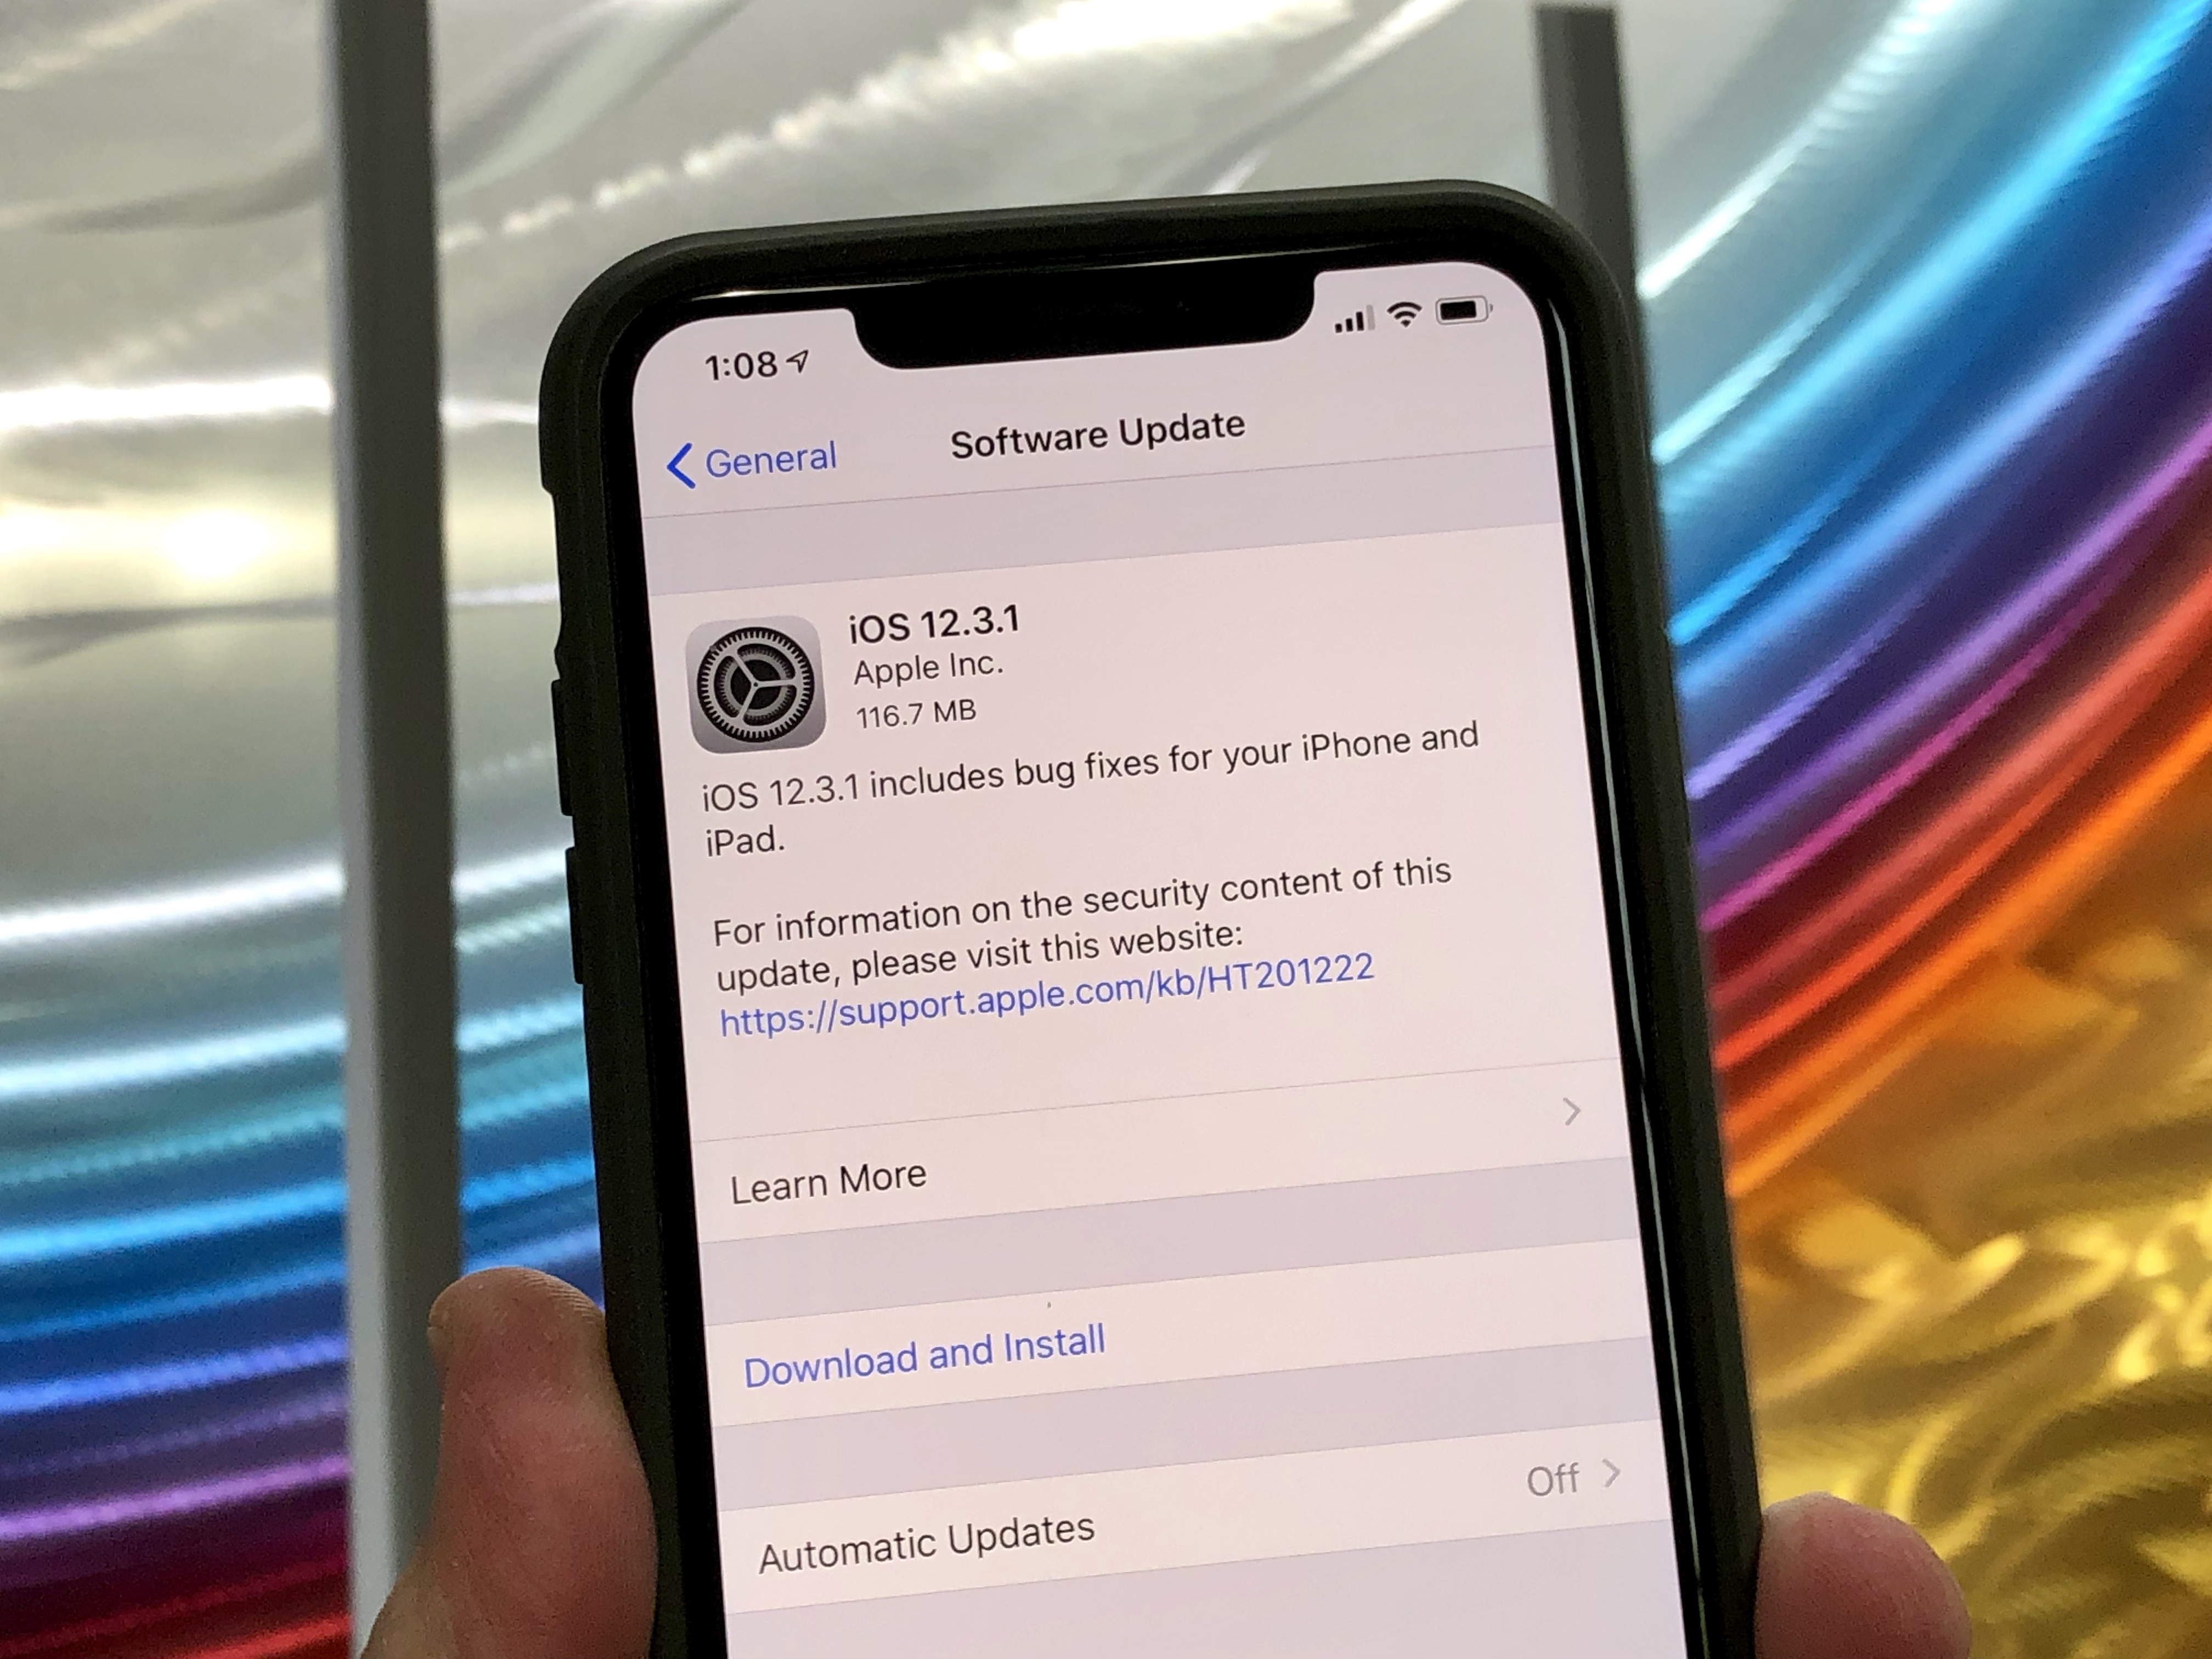 Issues download photos from iphone to macbook pro